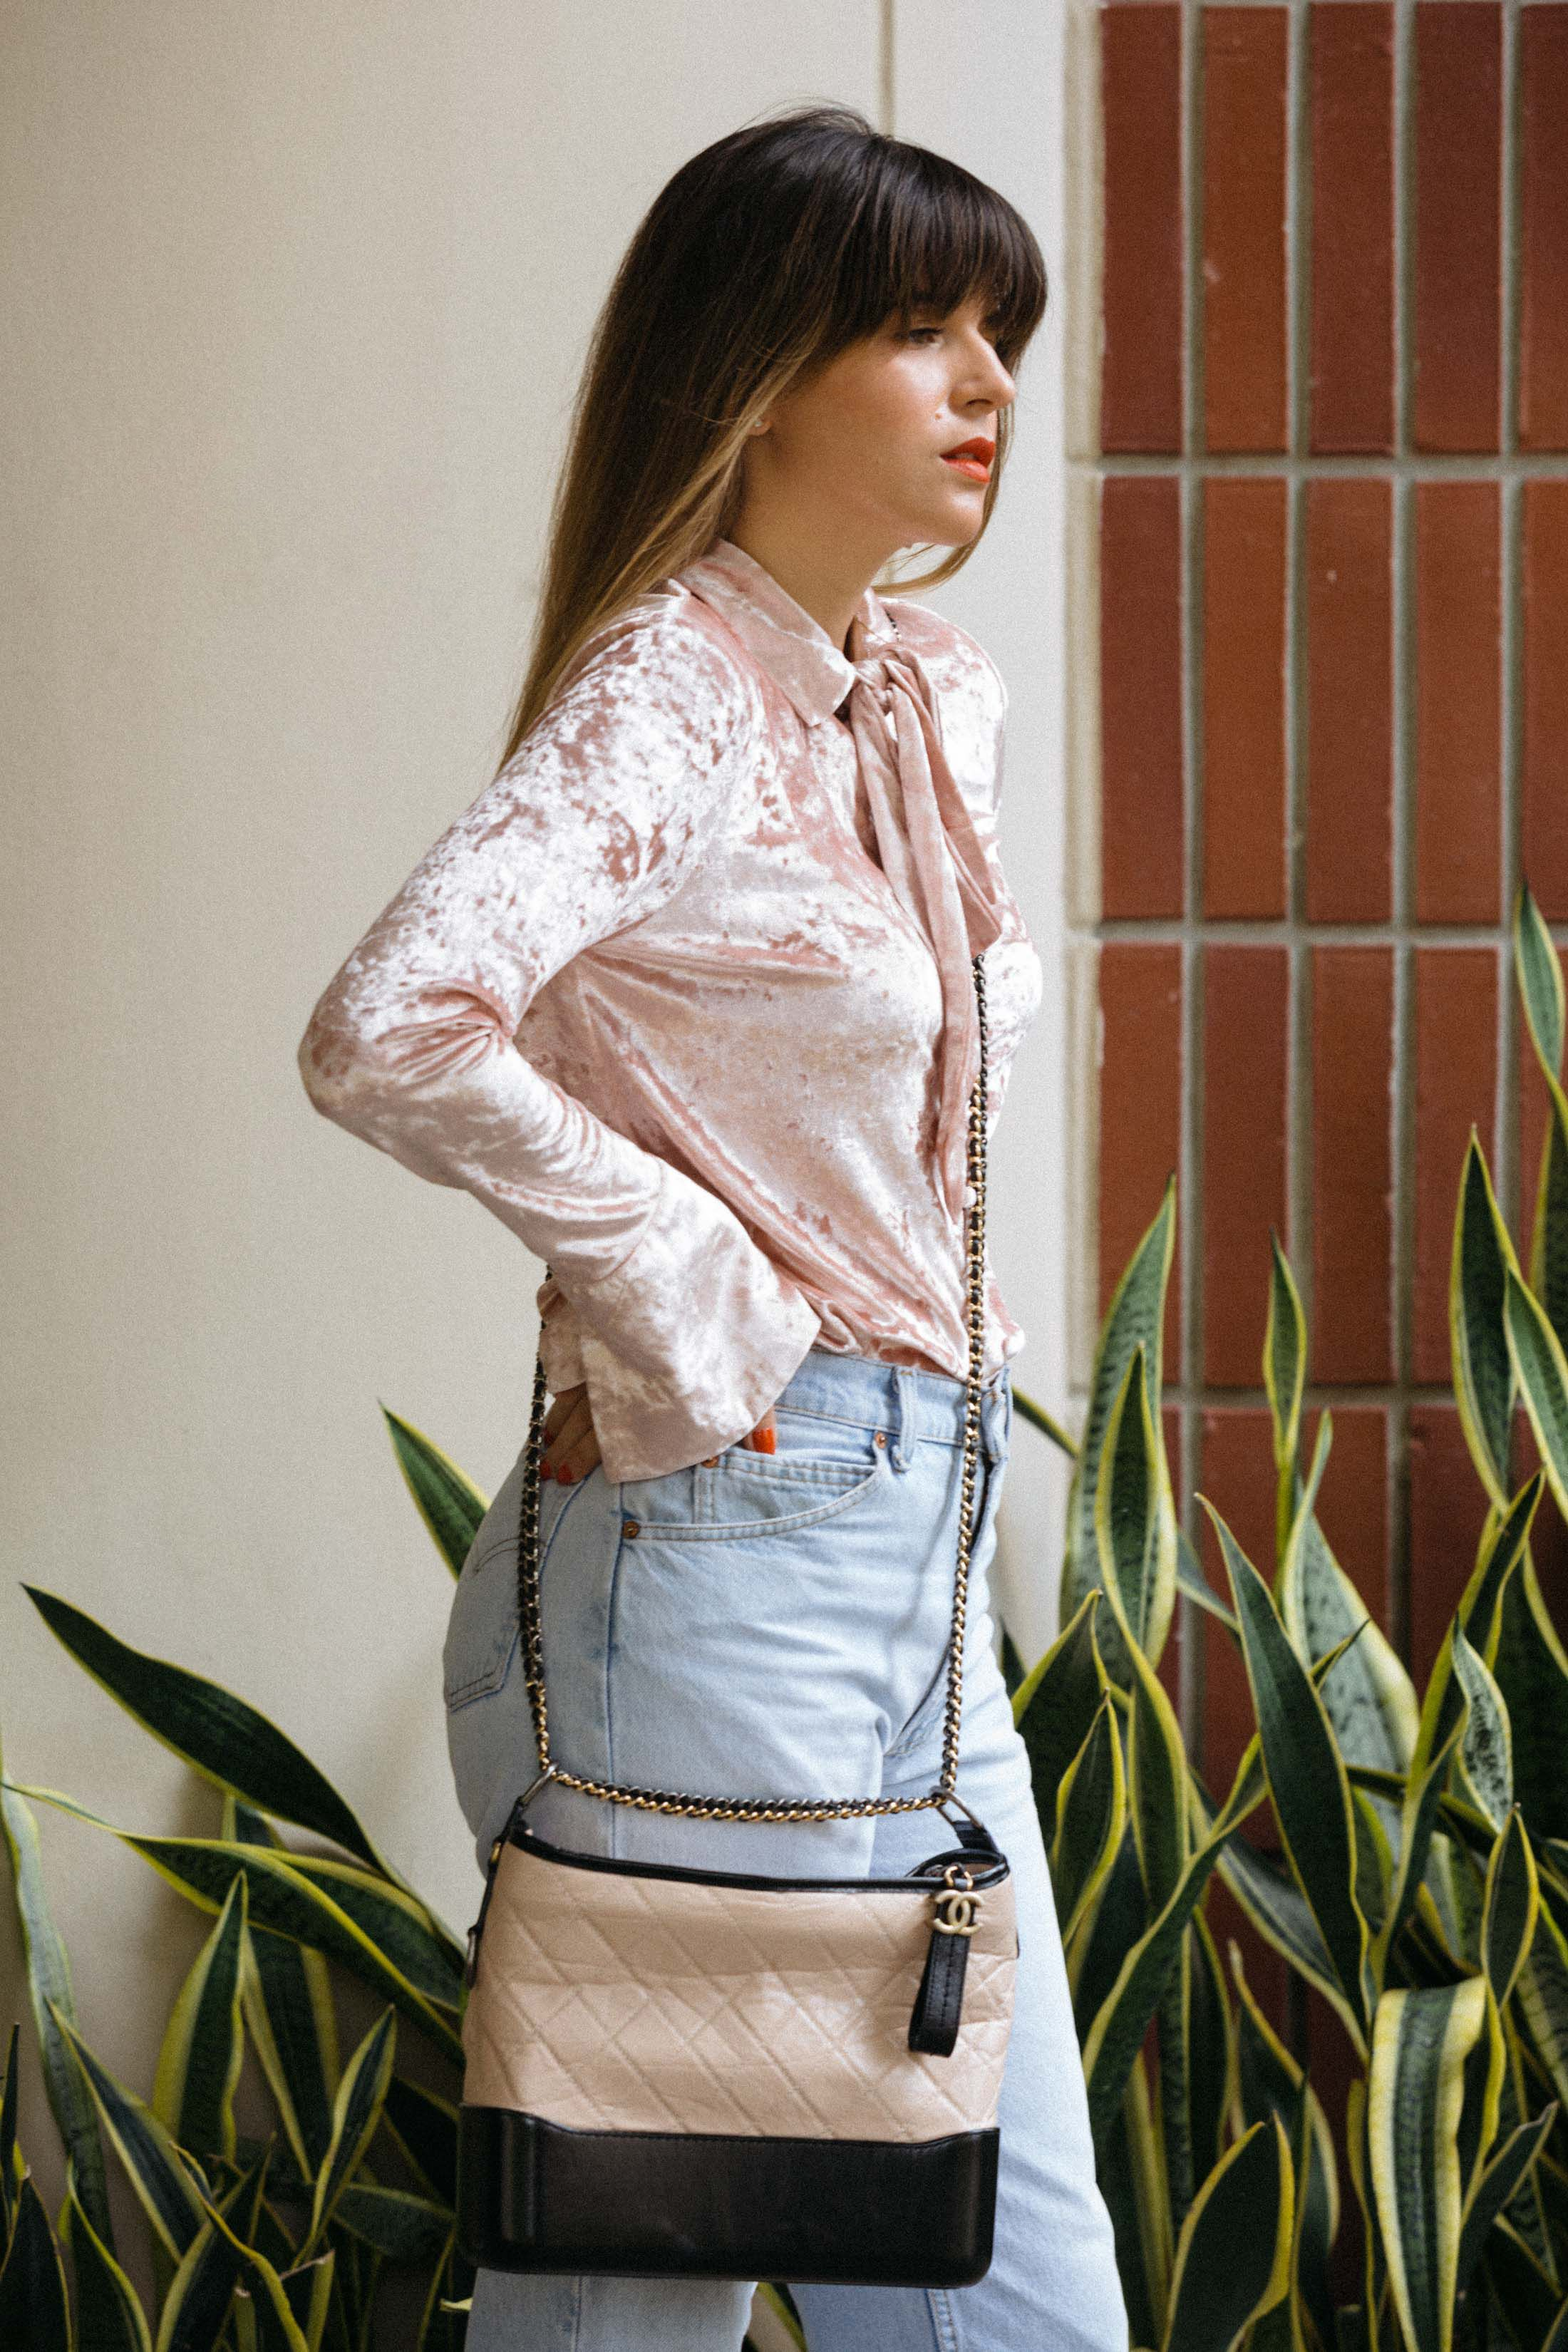 8a8ca1f1a31fbb Maristella wears a pink velvet blouse, high rise jeans and Chanel cross  body bag